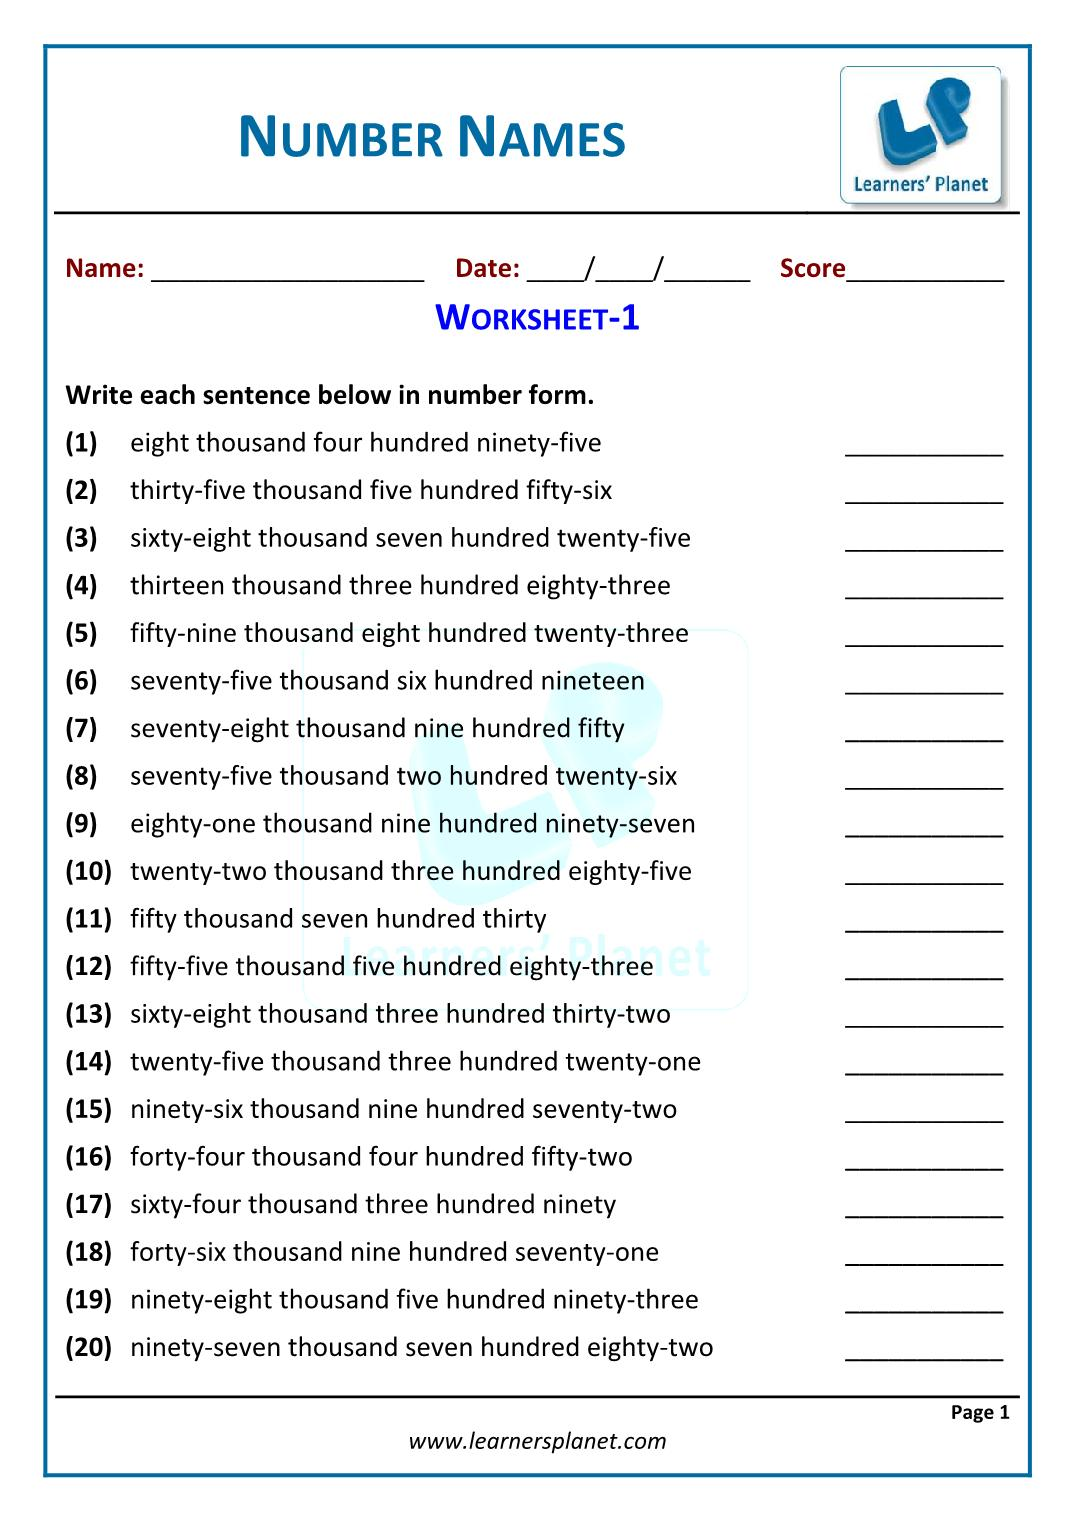 Class 4 NCERT math number names worksheets online quiz for kids